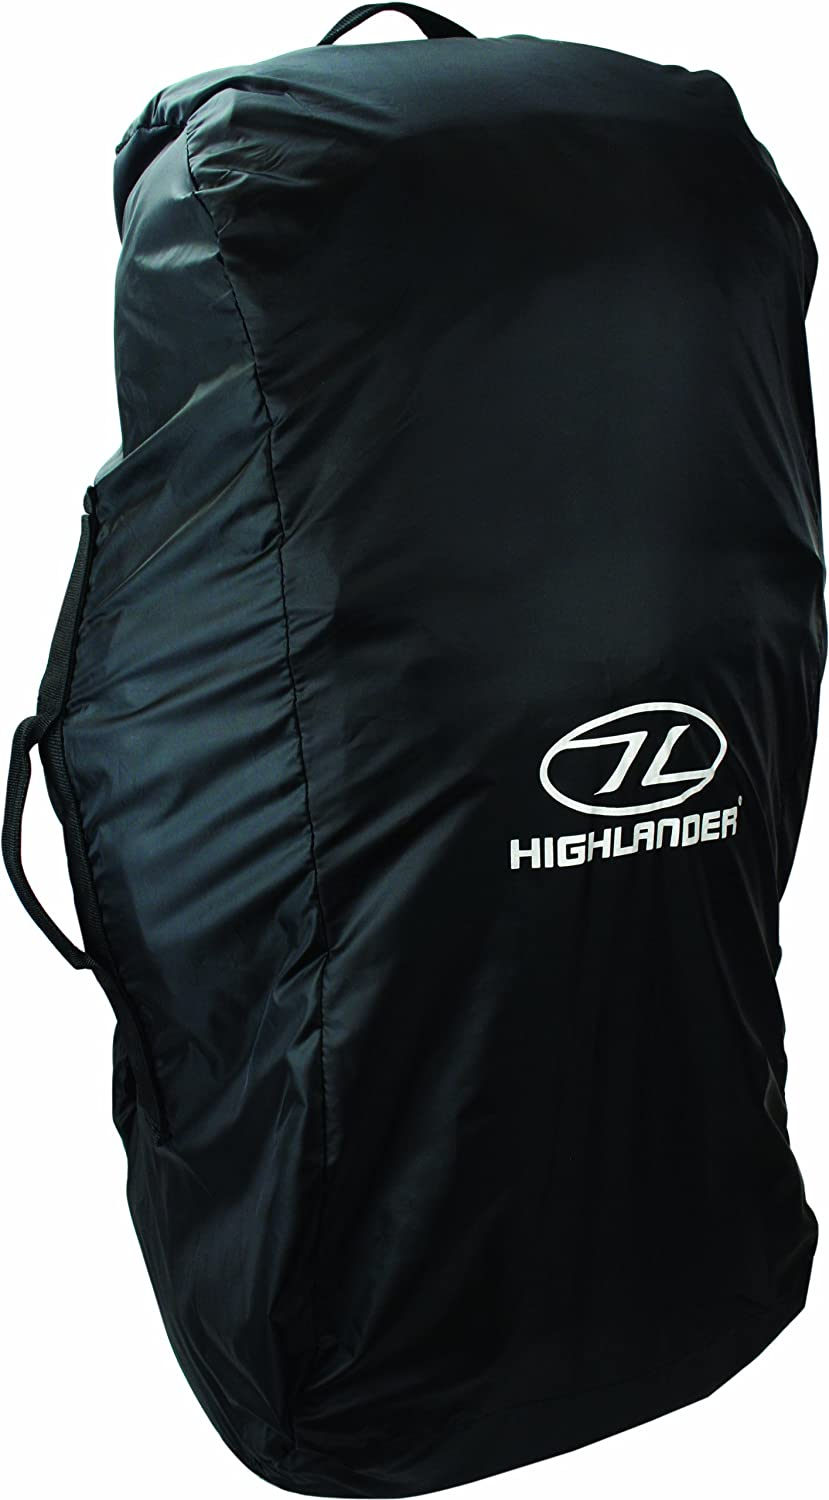 Highlander Large Combo Cover - Black ACC007-BK